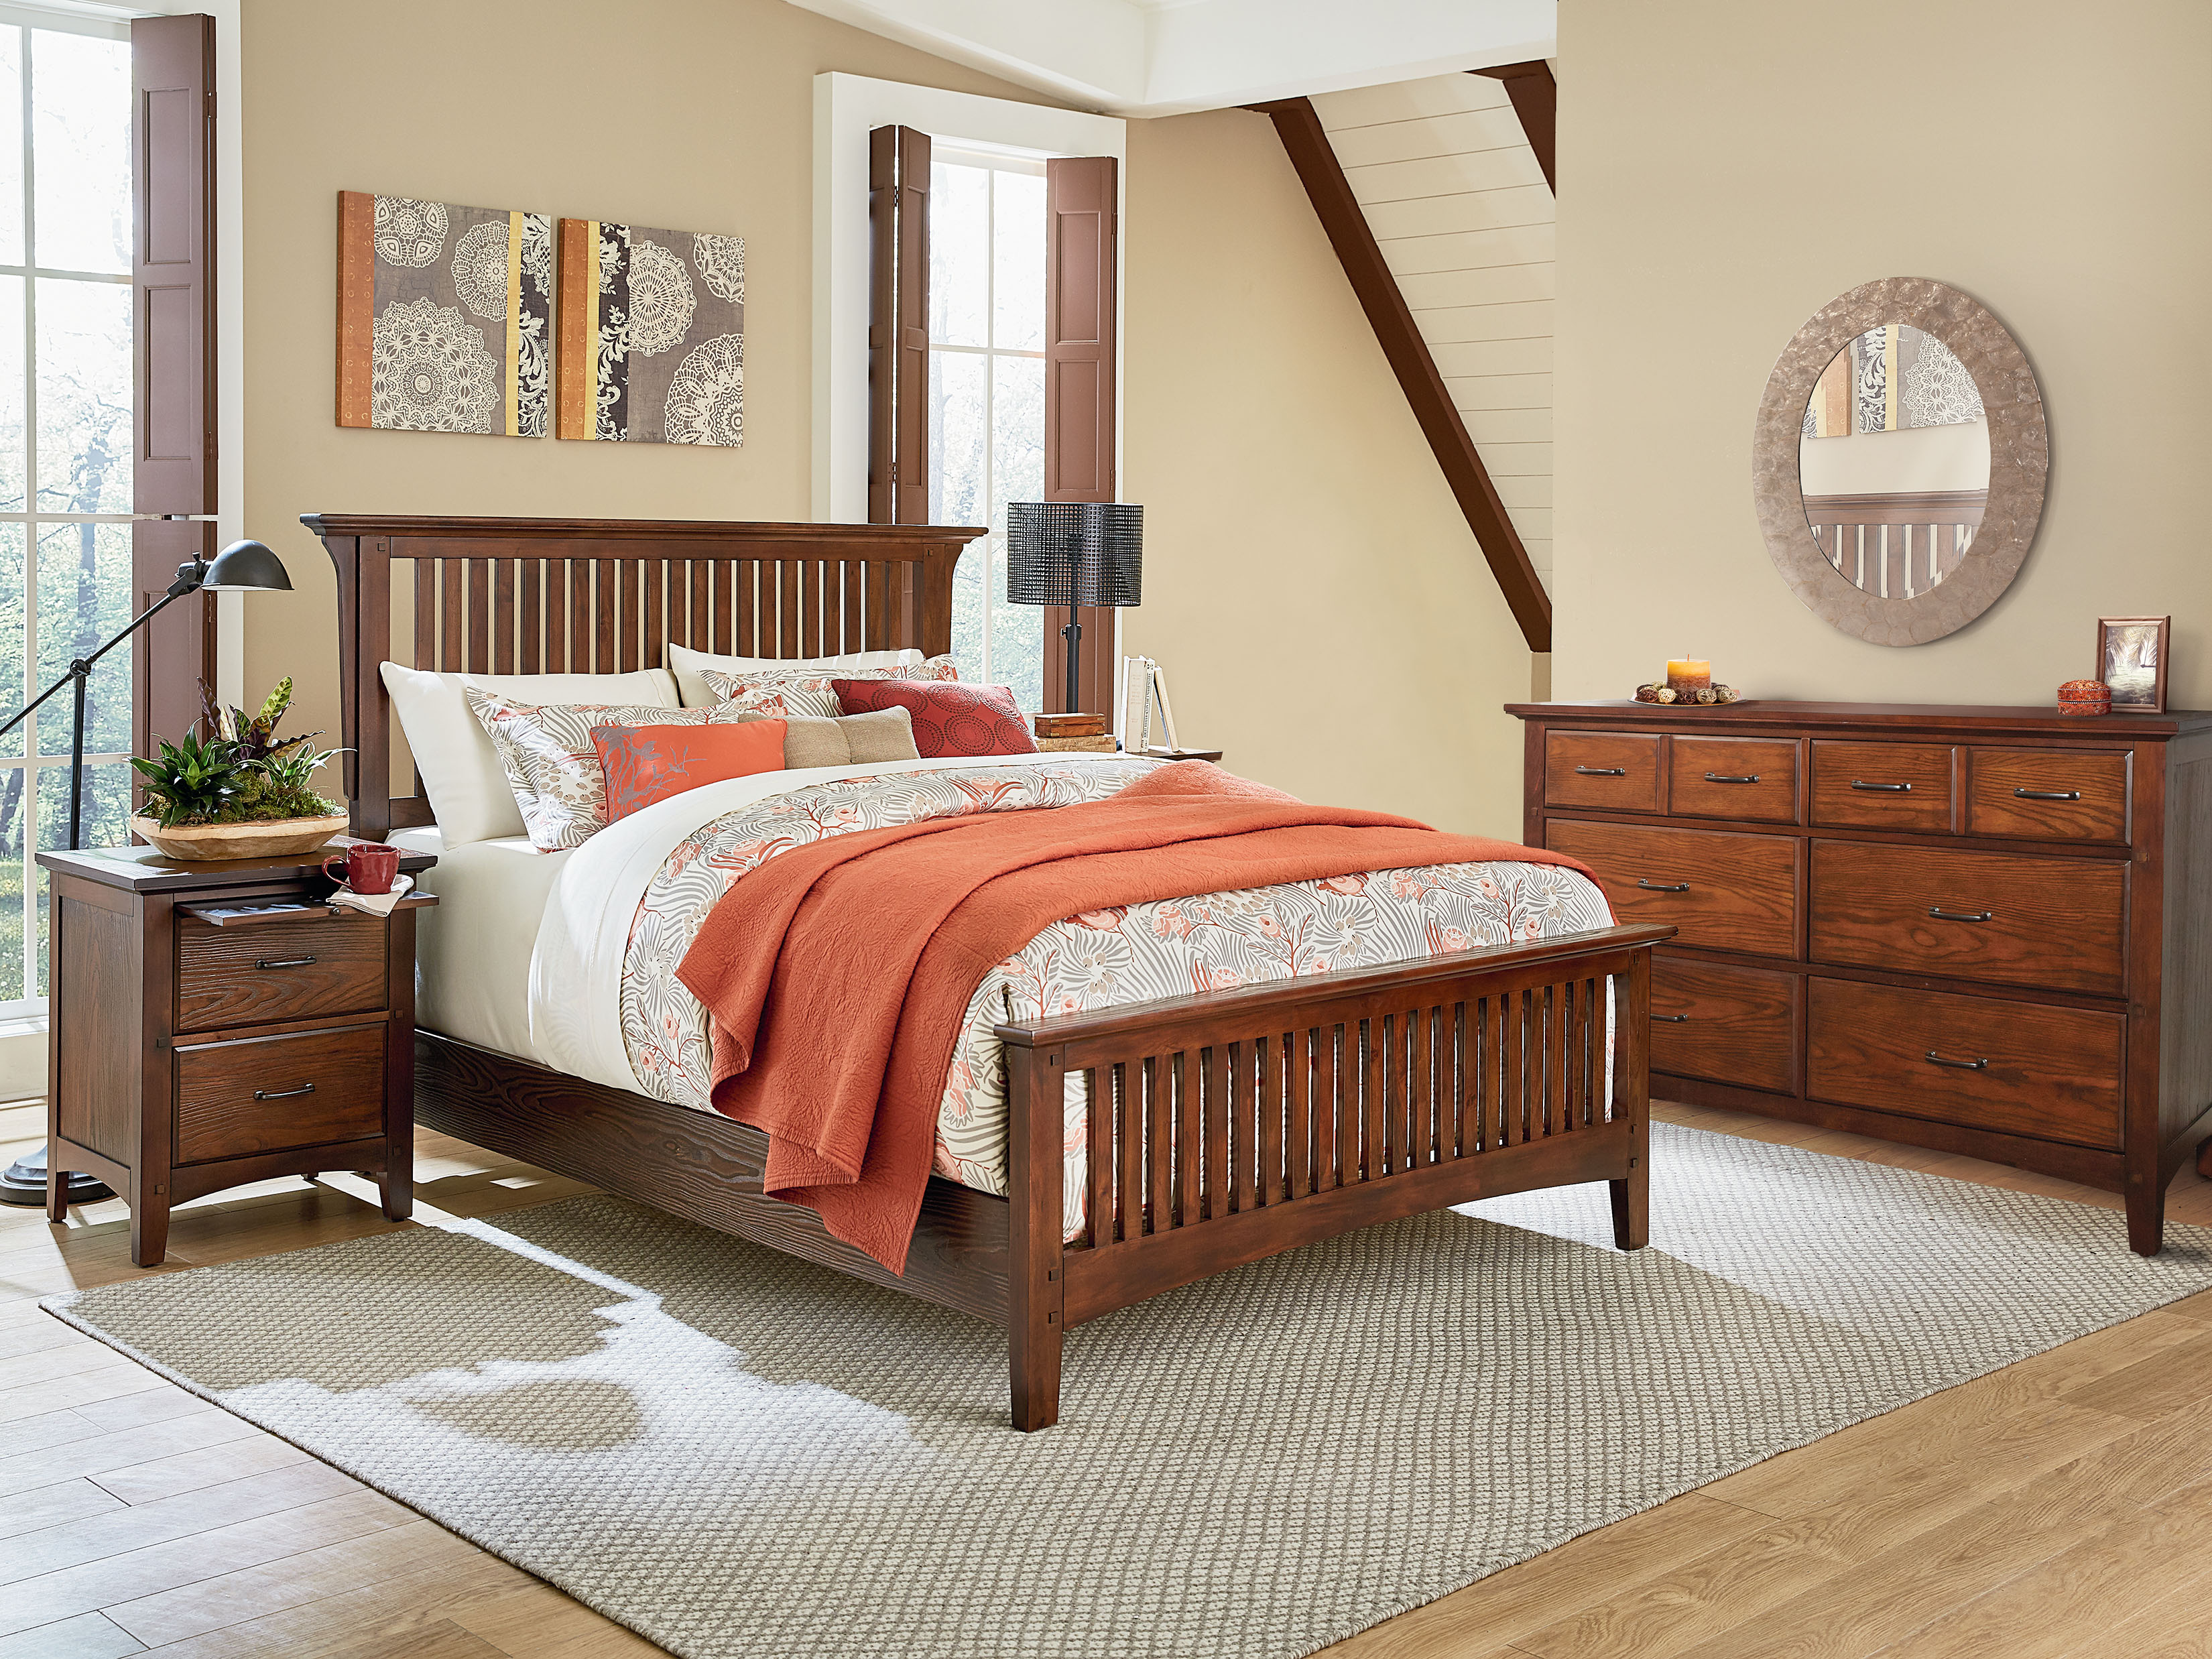 Modern Mission King Bedroom Set With 2 Nightstands And 1